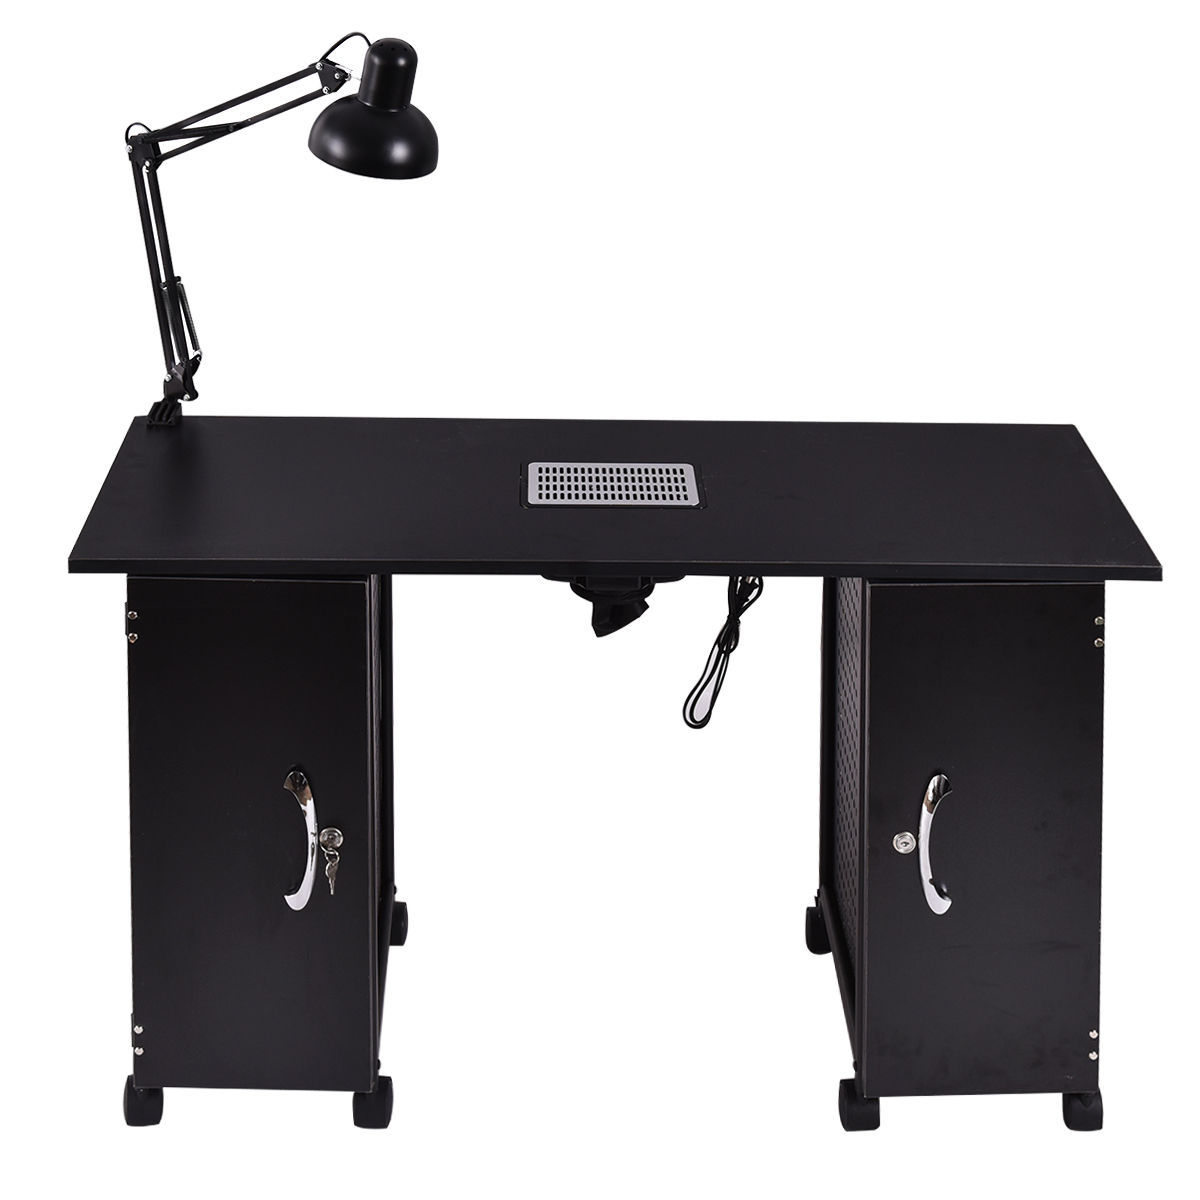 Giantex Nail Table Manicure Station Black Steel Frame Beauty Spa Salon Furniture with Storage Drawers Nail Tables HB84673